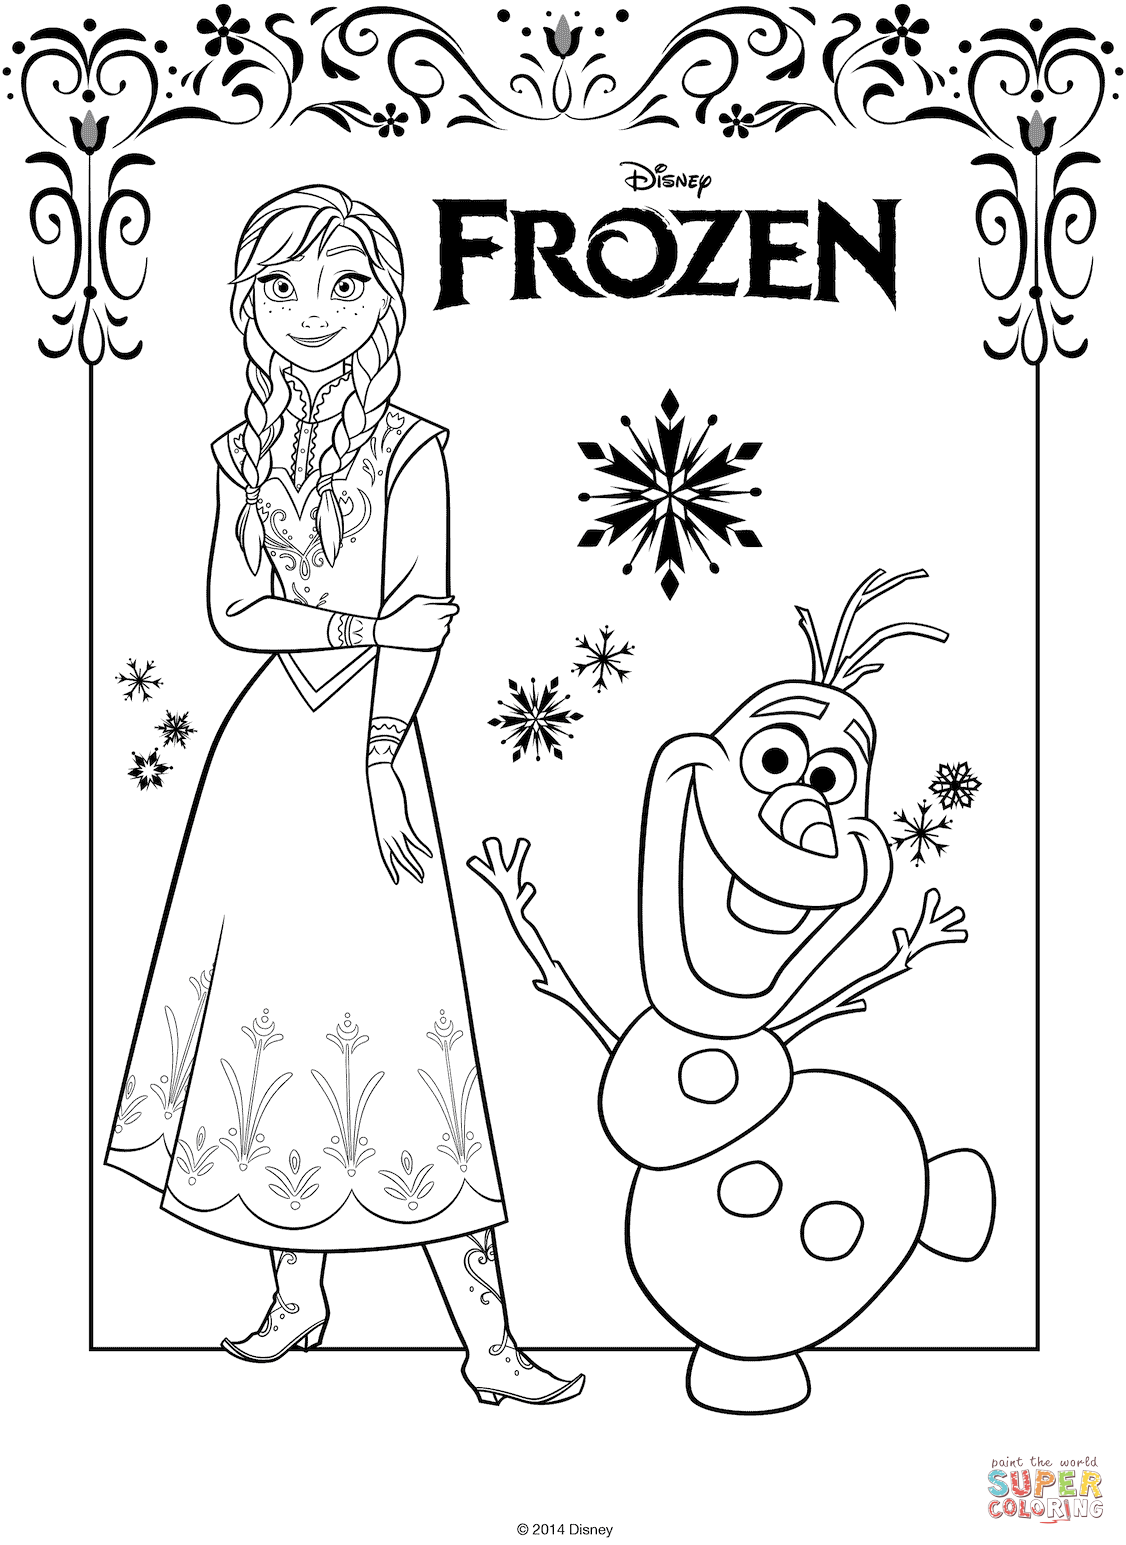 Grab Your New Coloring Pages Elsa And Anna Download Http Gethighit Com New Colorin Kostenlose Ausmalbilder Malvorlage Prinzessin Ausmalbilder Anna Und Elsa